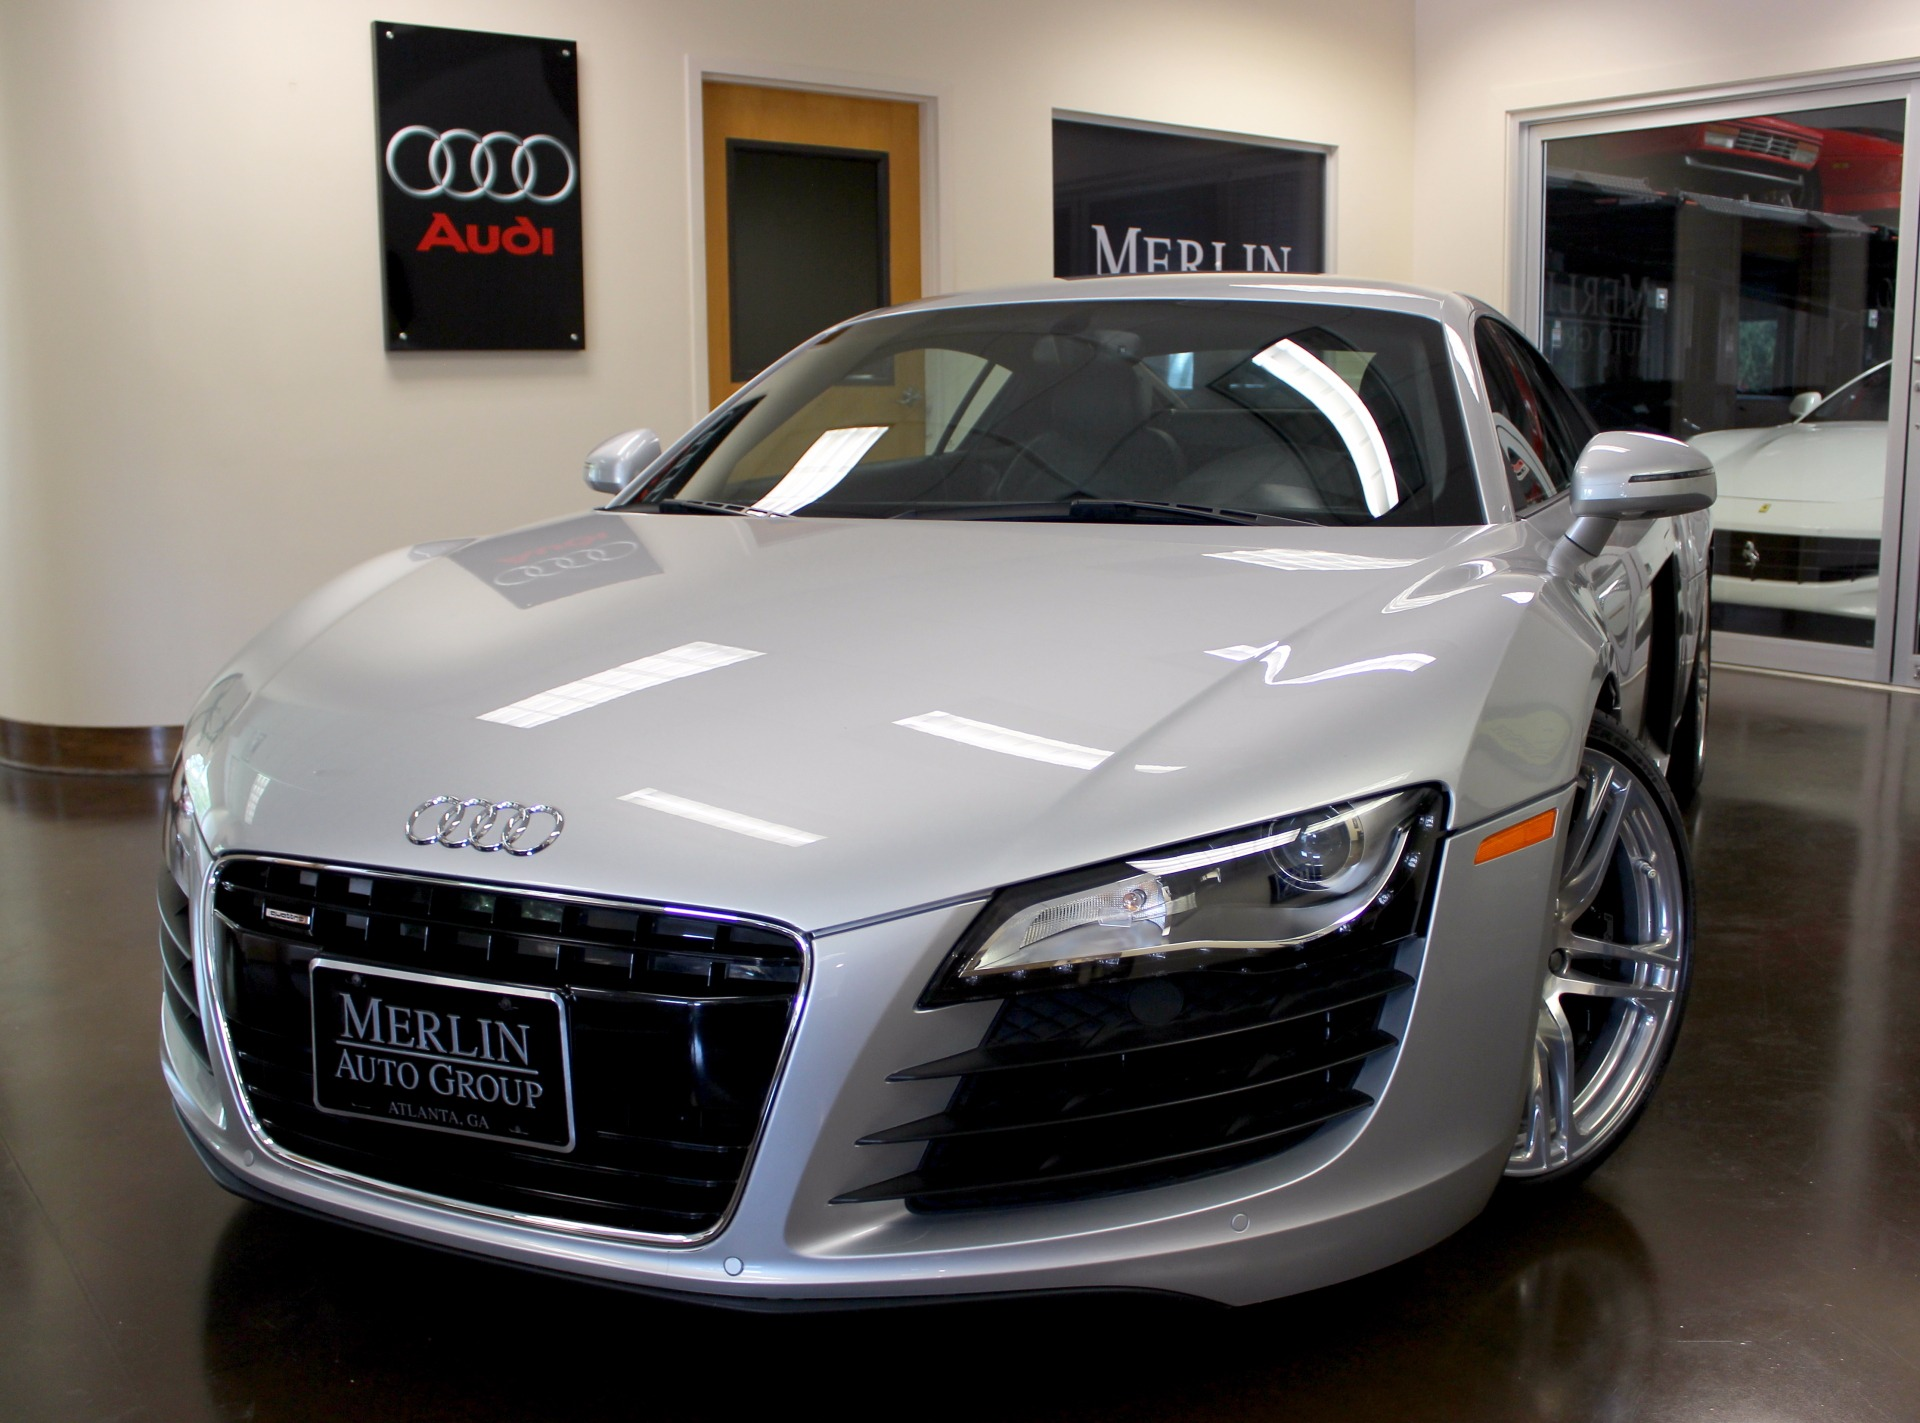 used 2009 audi r8 stock p3959d ultra luxury car from merlin auto group. Black Bedroom Furniture Sets. Home Design Ideas